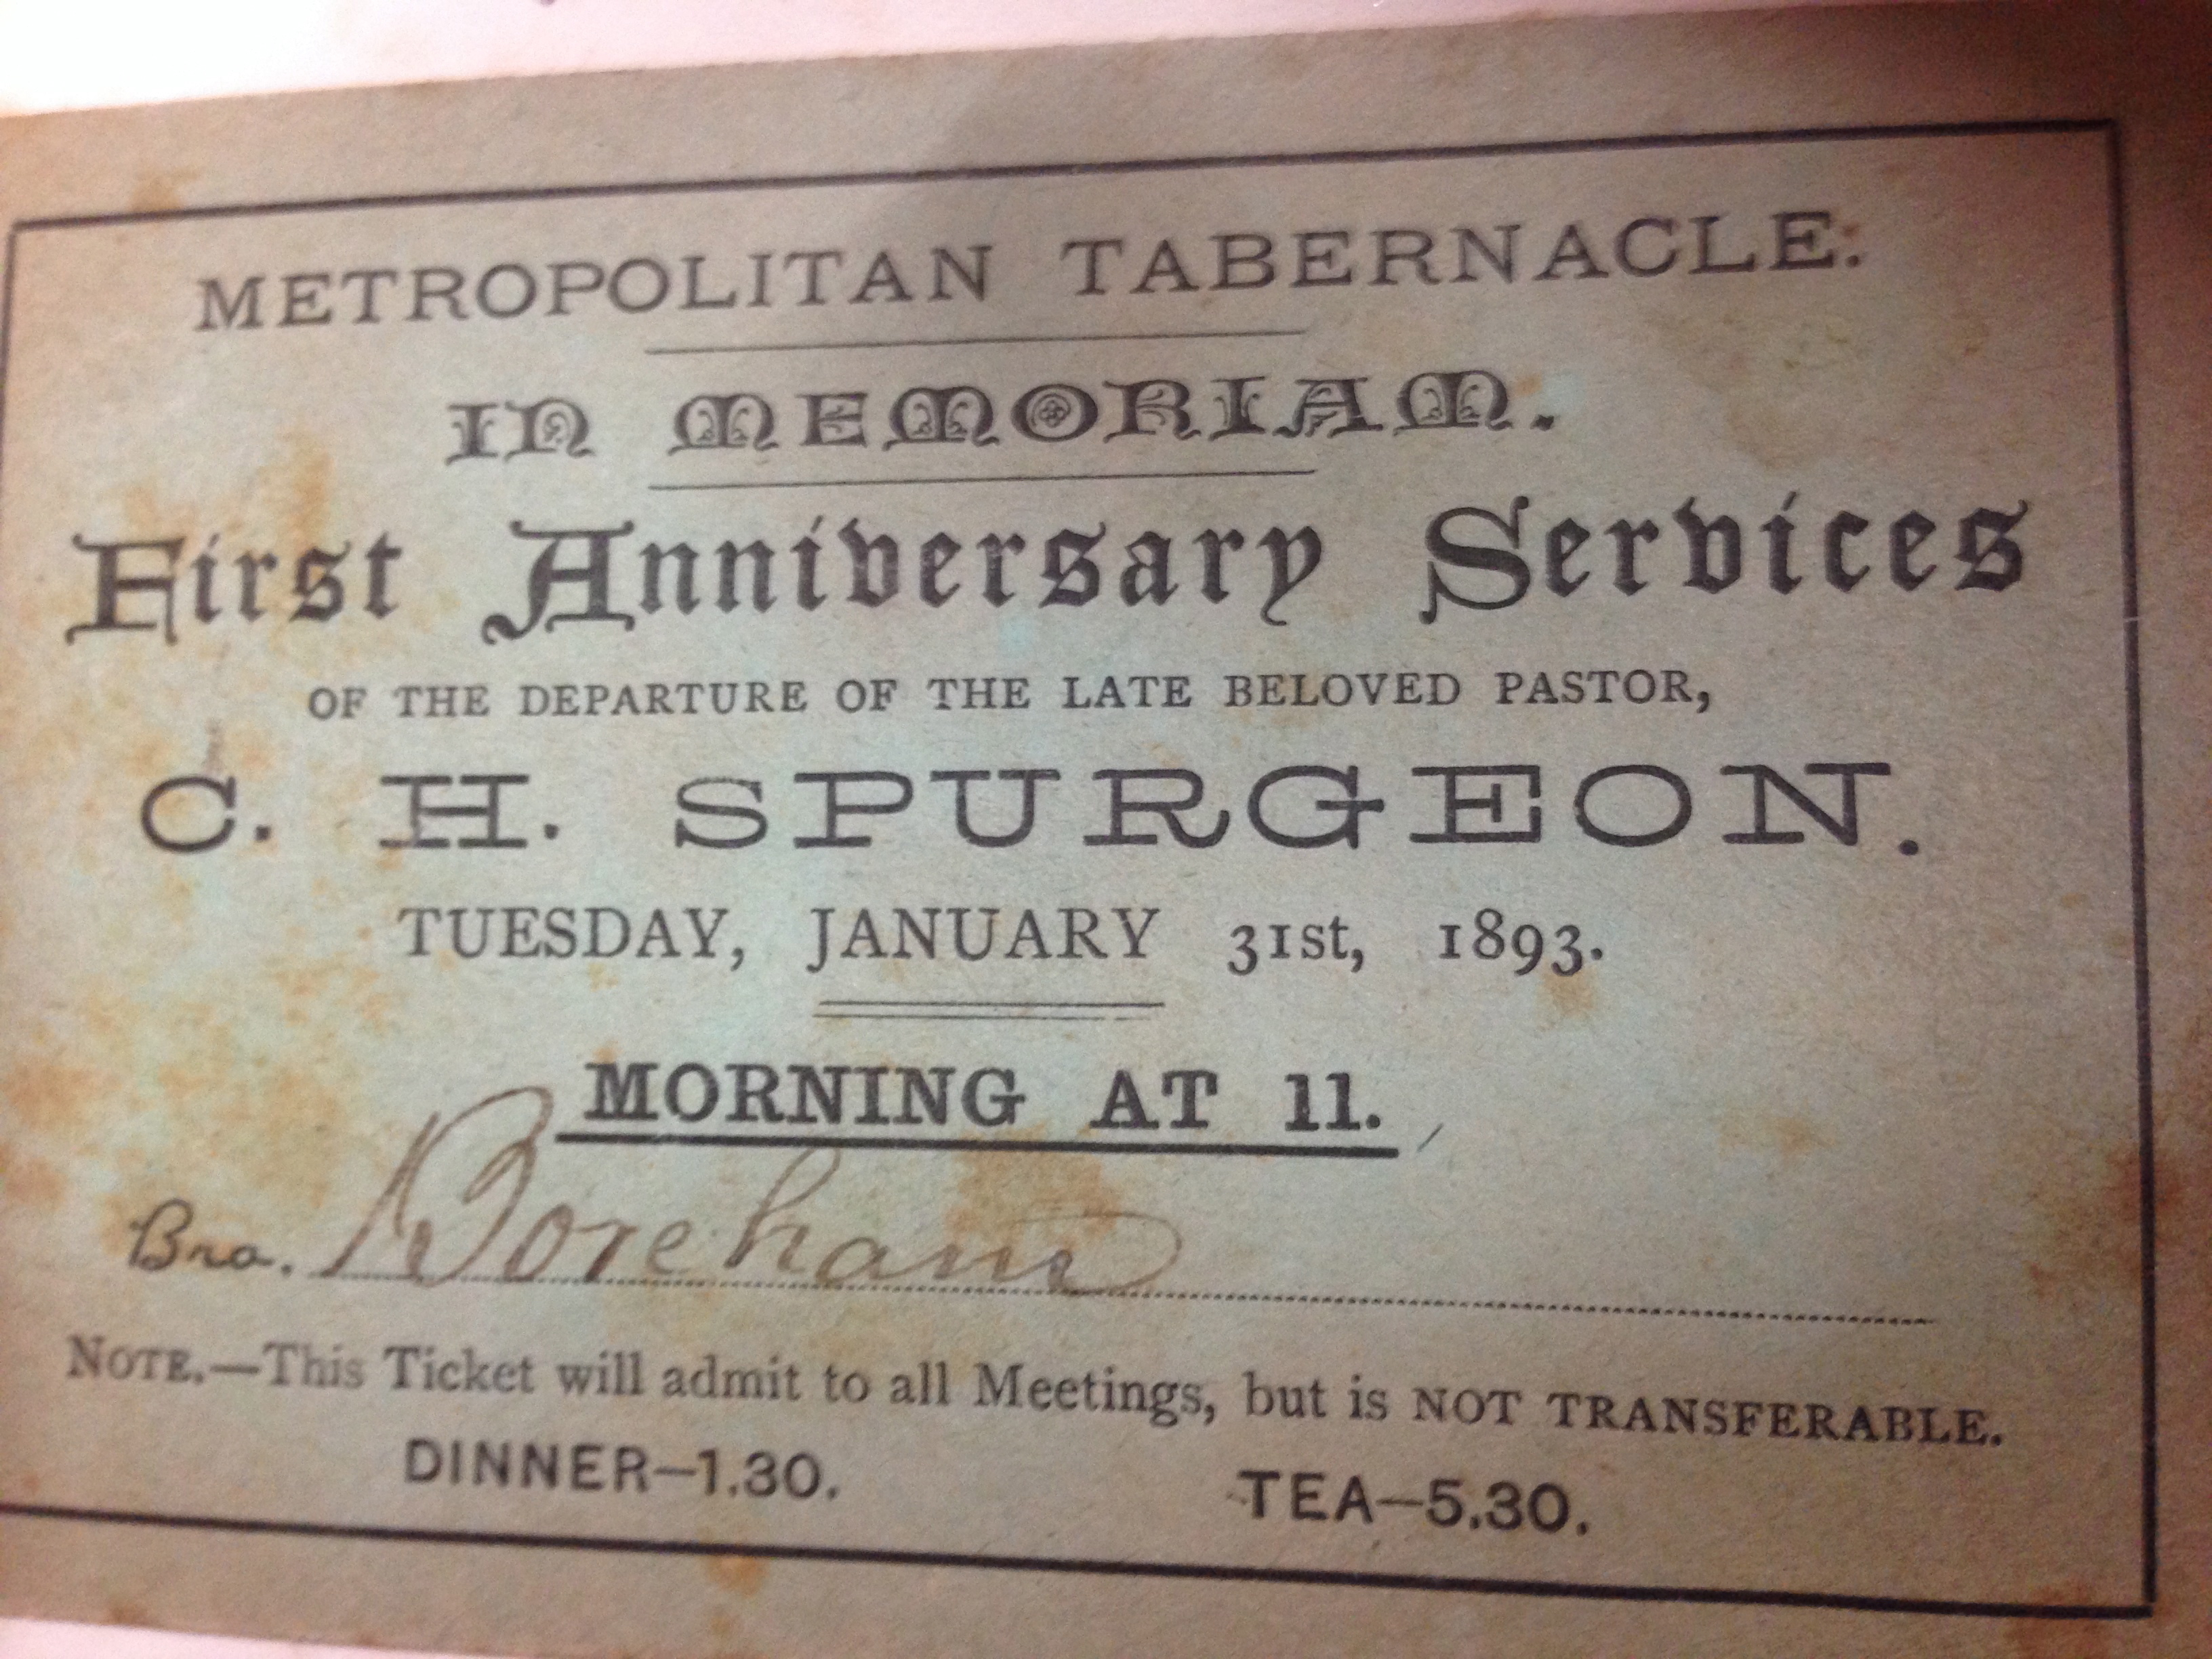 FWB's First anniversary of the death of Charles Haddon Spurgeon memorial ticket